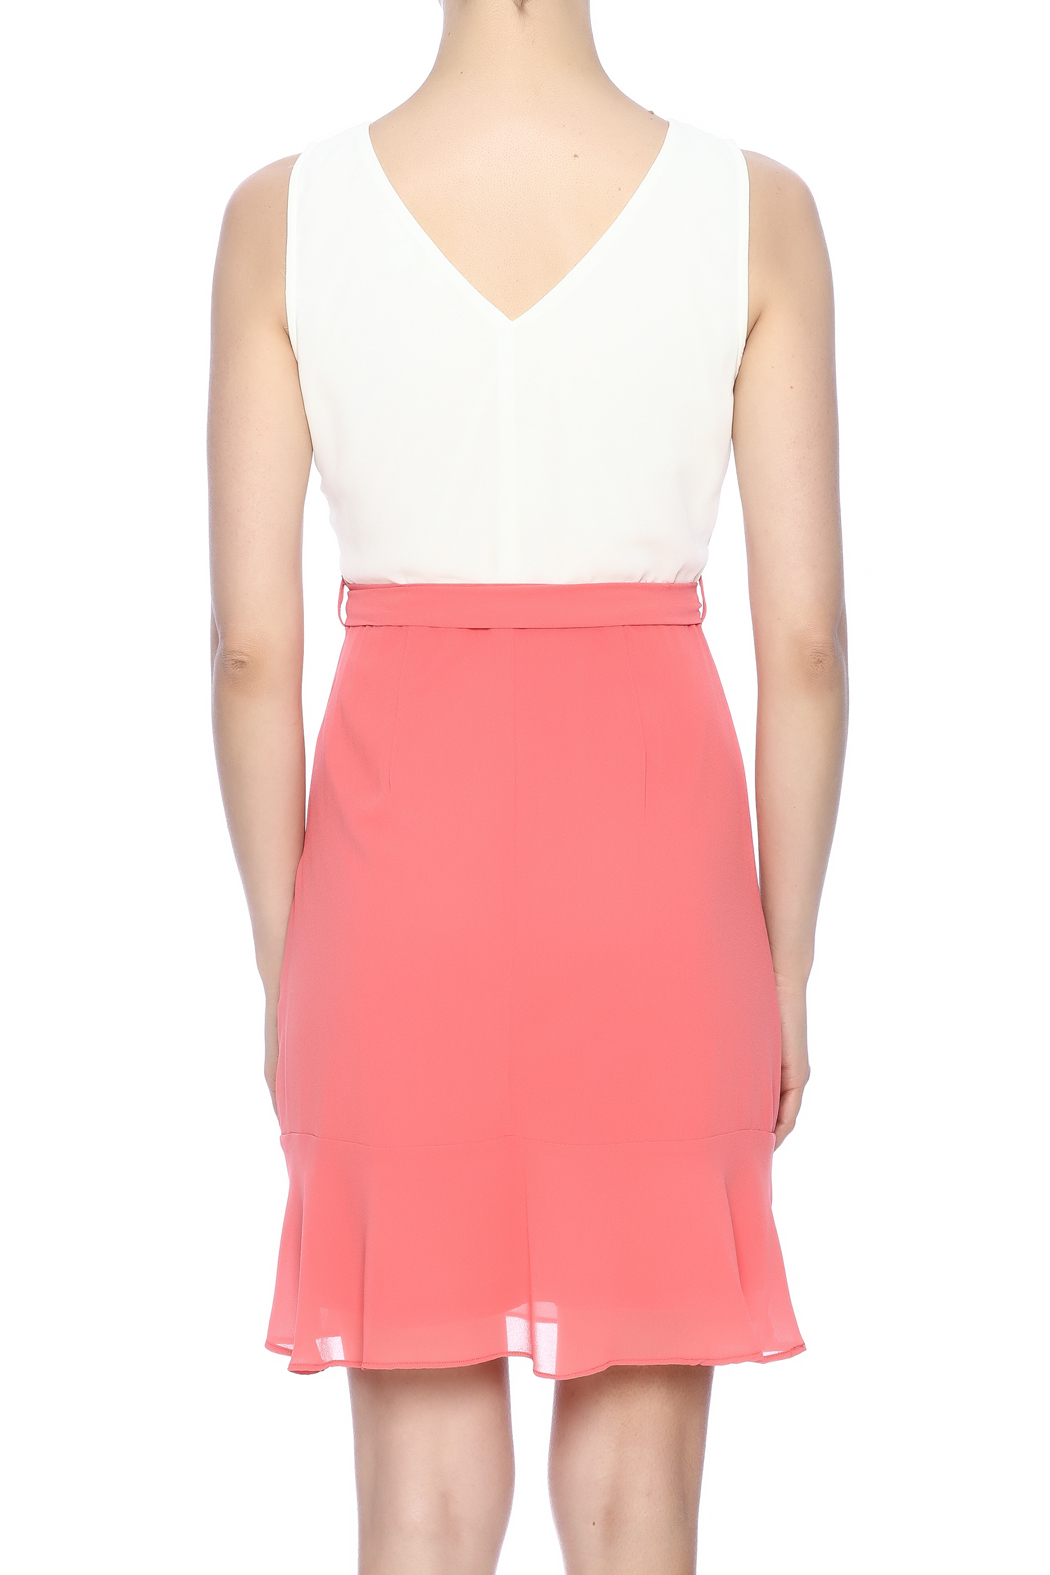 Ya Los Angeles Coral Embroidered Dress - Back Cropped Image